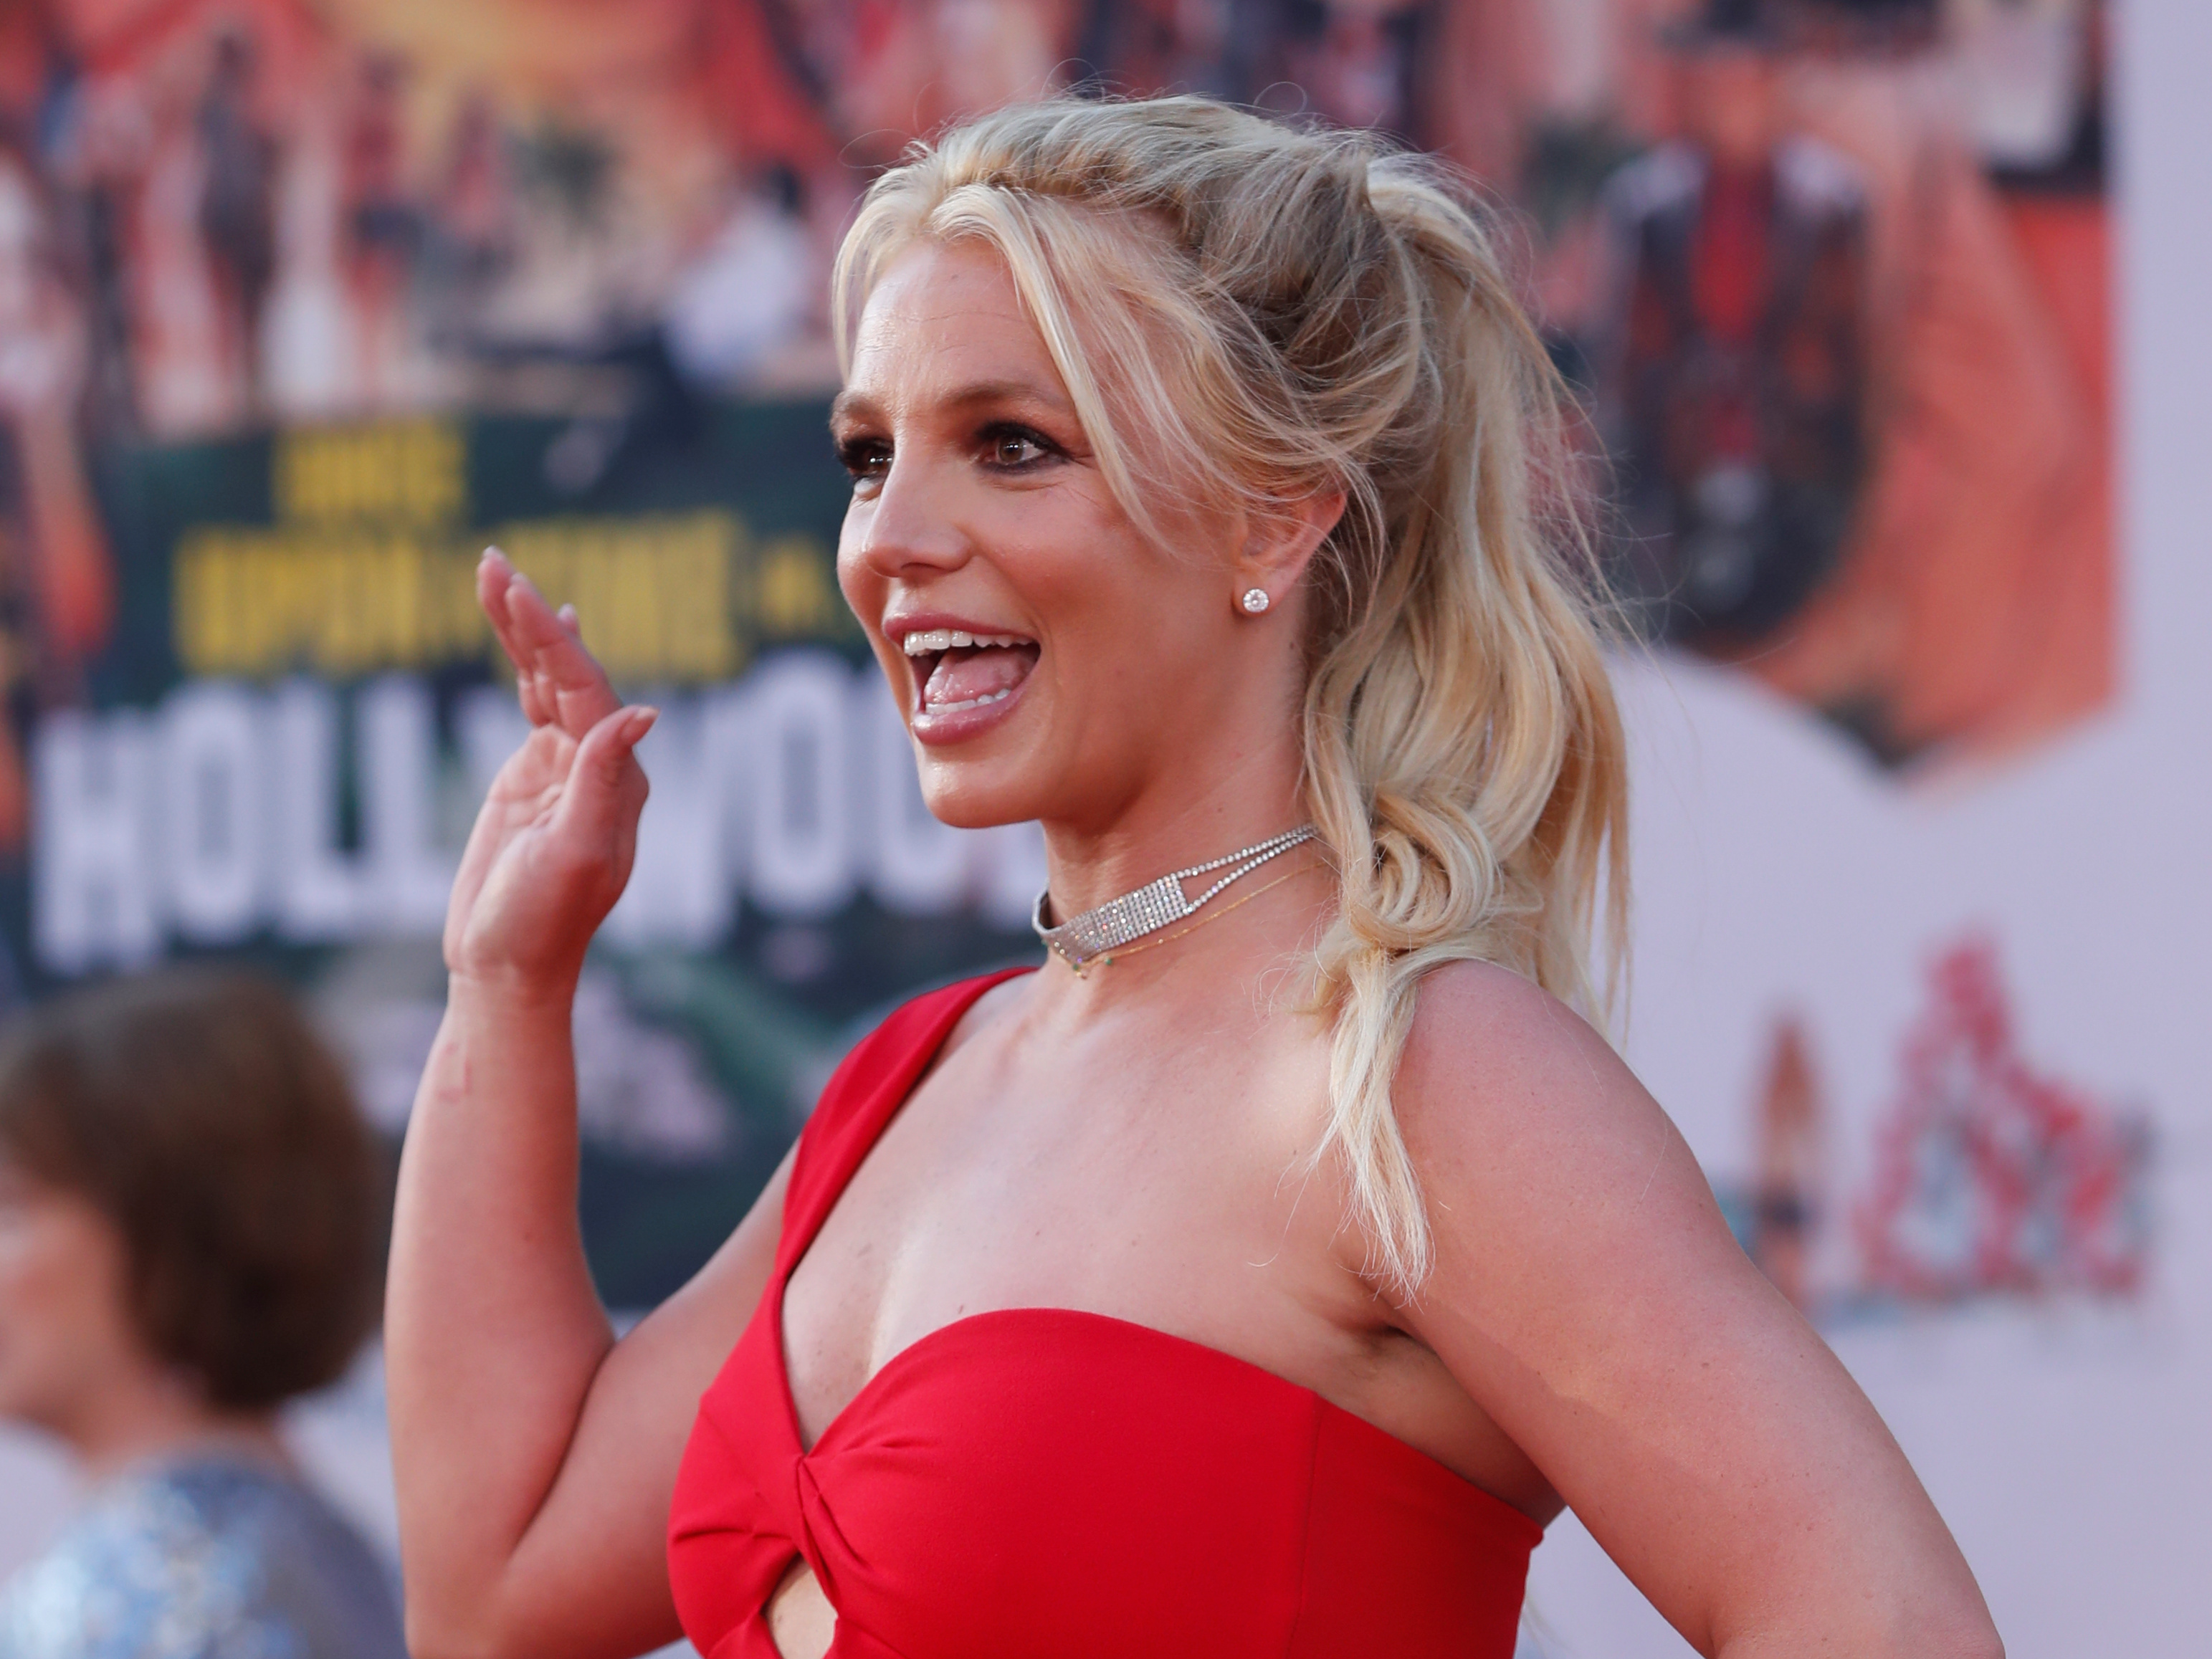 Britney Spears hasn't legally controlled her $59 million fortune in 12 years. That is how the pop icon makes and spends her cash, from Purpose looking trips to California mansions.